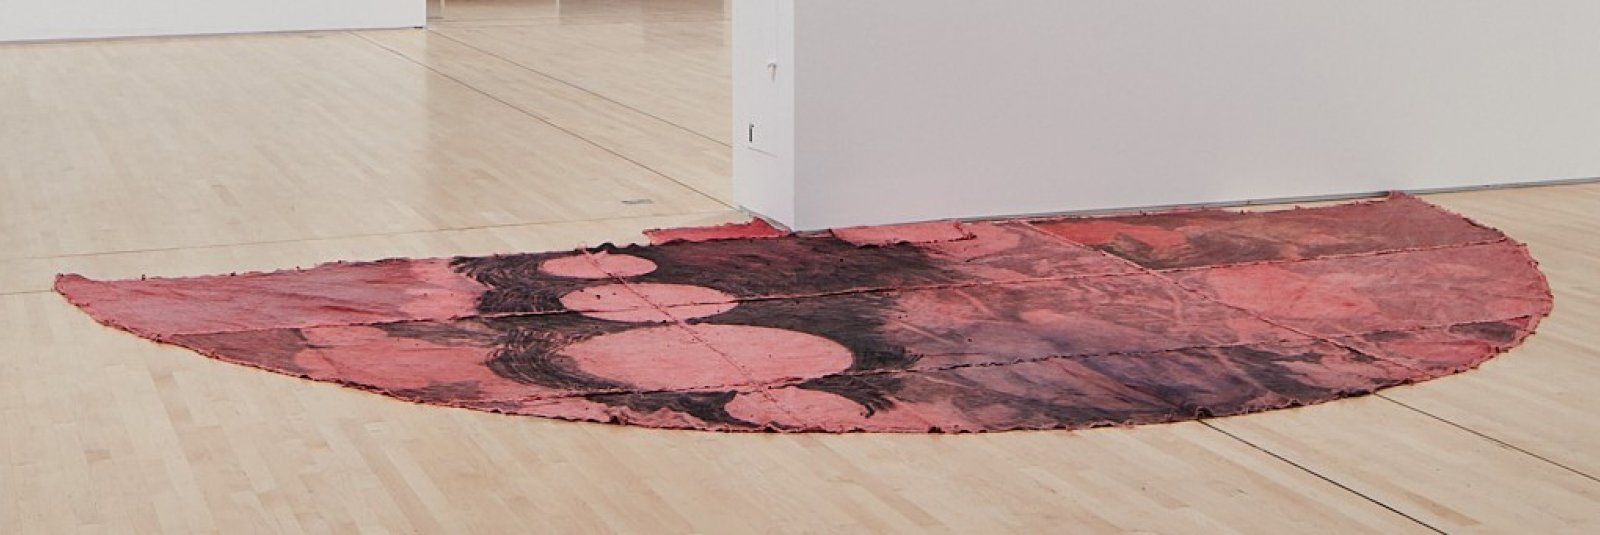 Duane Linklater, can the circle be unbroken 4, 2019, digital print on linen, cup and saucer red dye, indigo dye, charcoal, 120 x 240 in. (305 x 610 cm). Installation view, SOFT POWER, SF MOMA, San Francisco, USA, 2019